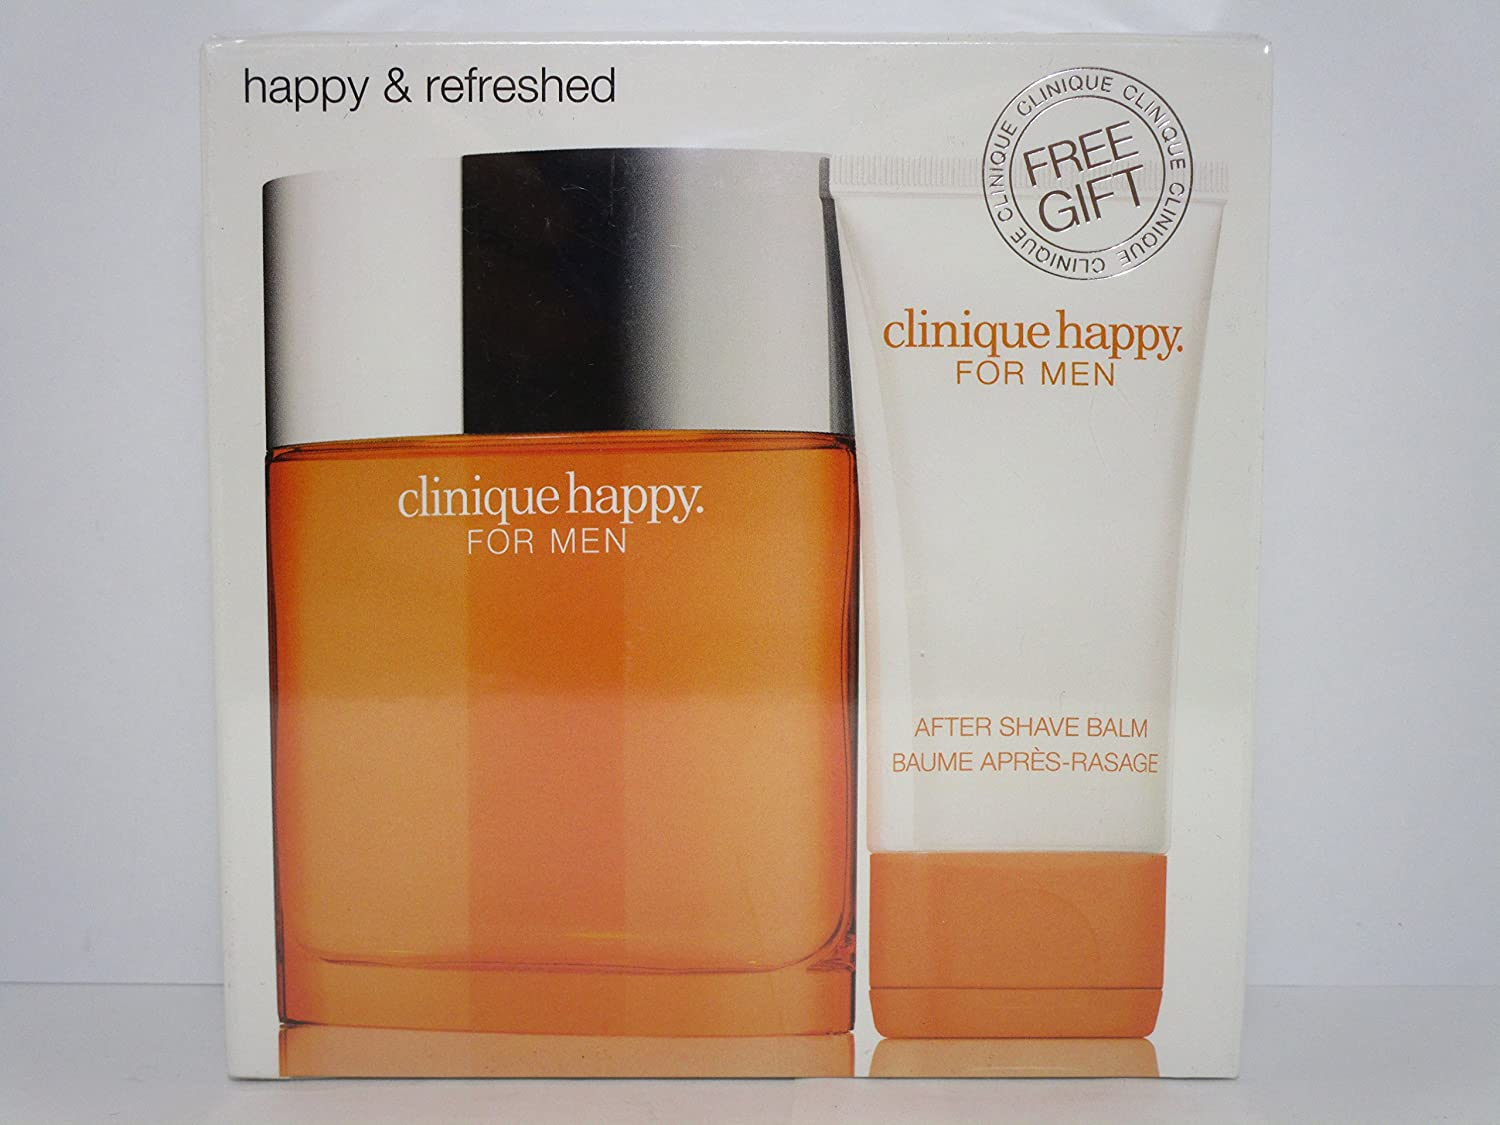 CLINIQUE HAPPY FOR MEN Eau De Toilette Spray FOR MEN 3.4 Oz / 100 ml & AFTERSHAVE BALM 1.7 Oz / 50 ml BRAND NEW ITEM IN BOX SEALED